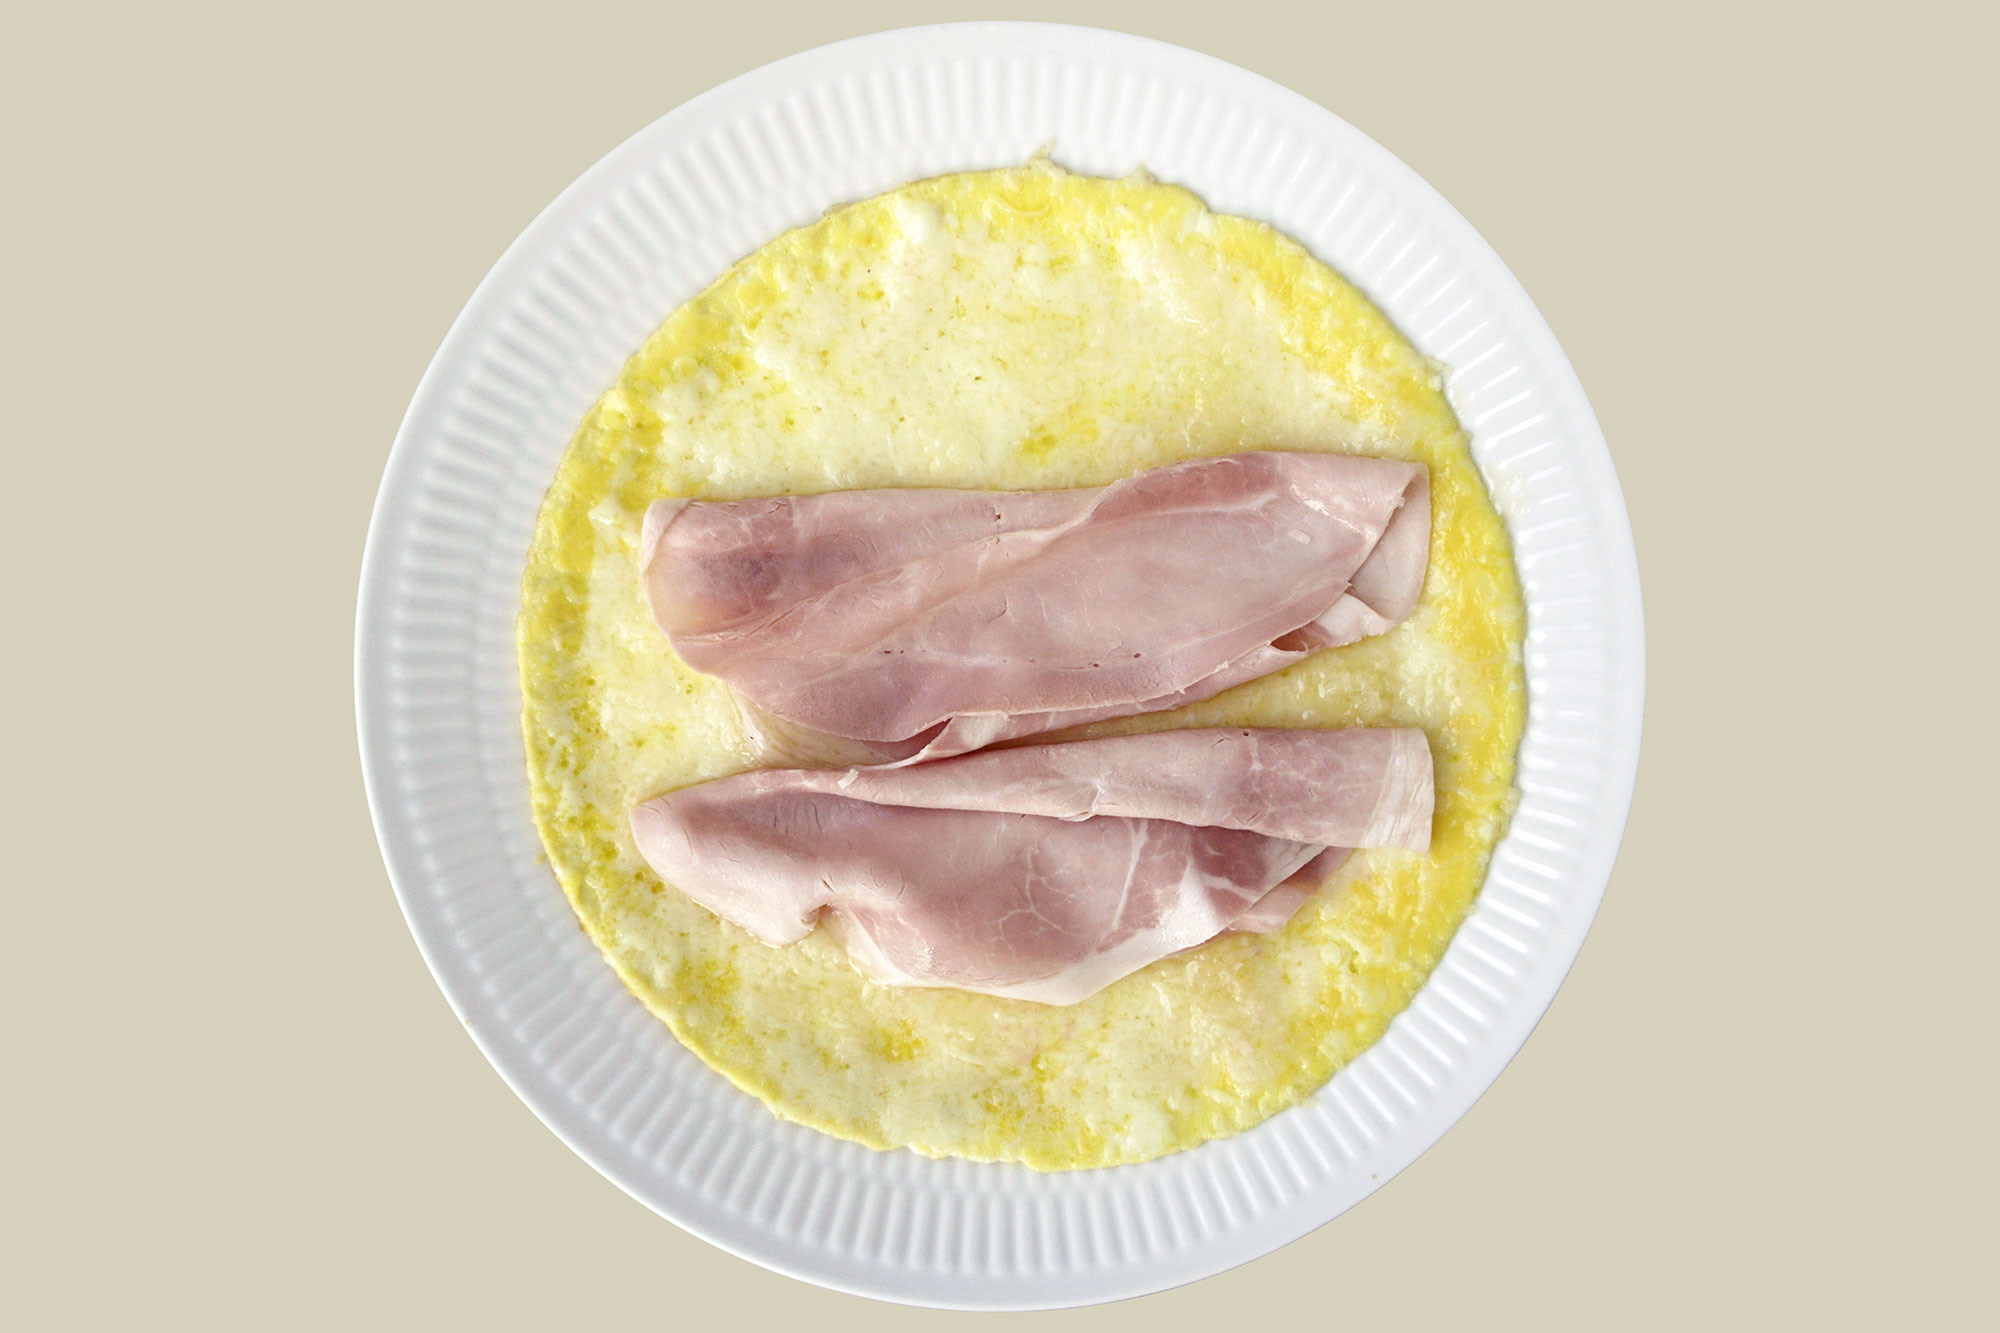 Lord Hamton: The Classic Ham & Cheese Omelet